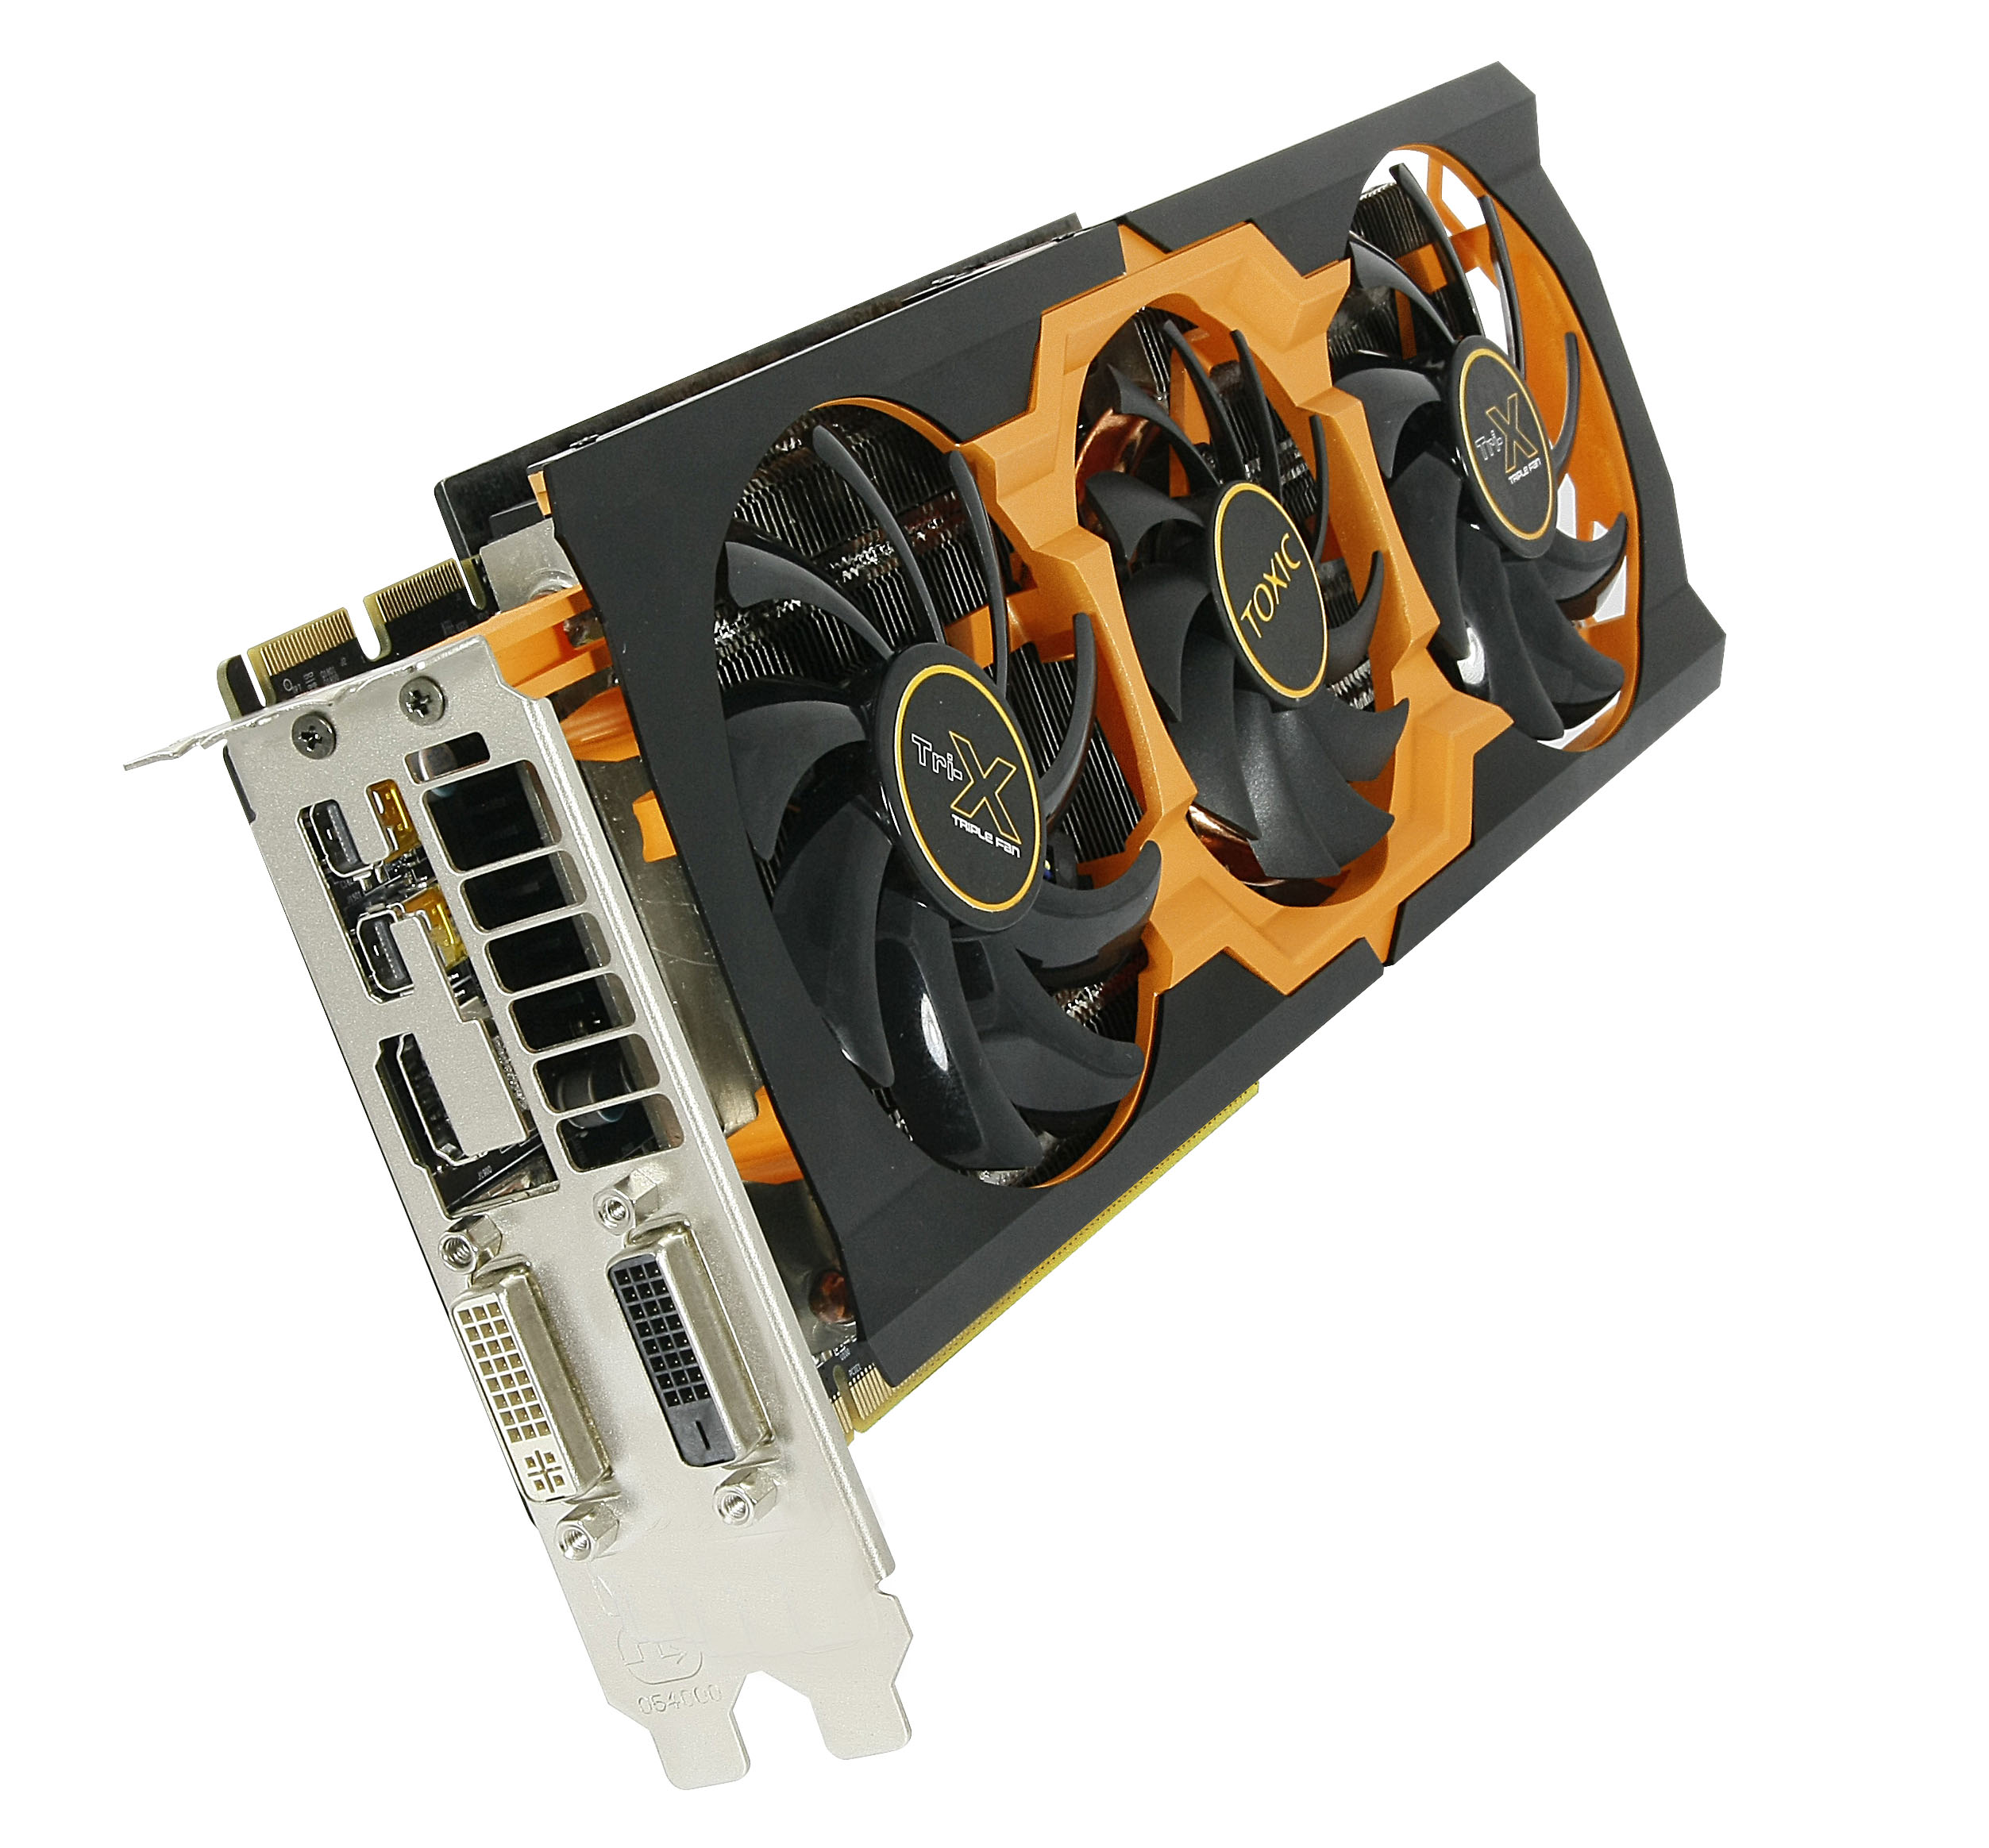 Meet The Sapphire R9 280X Toxic, Cont - The Sapphire R9 280X Toxic